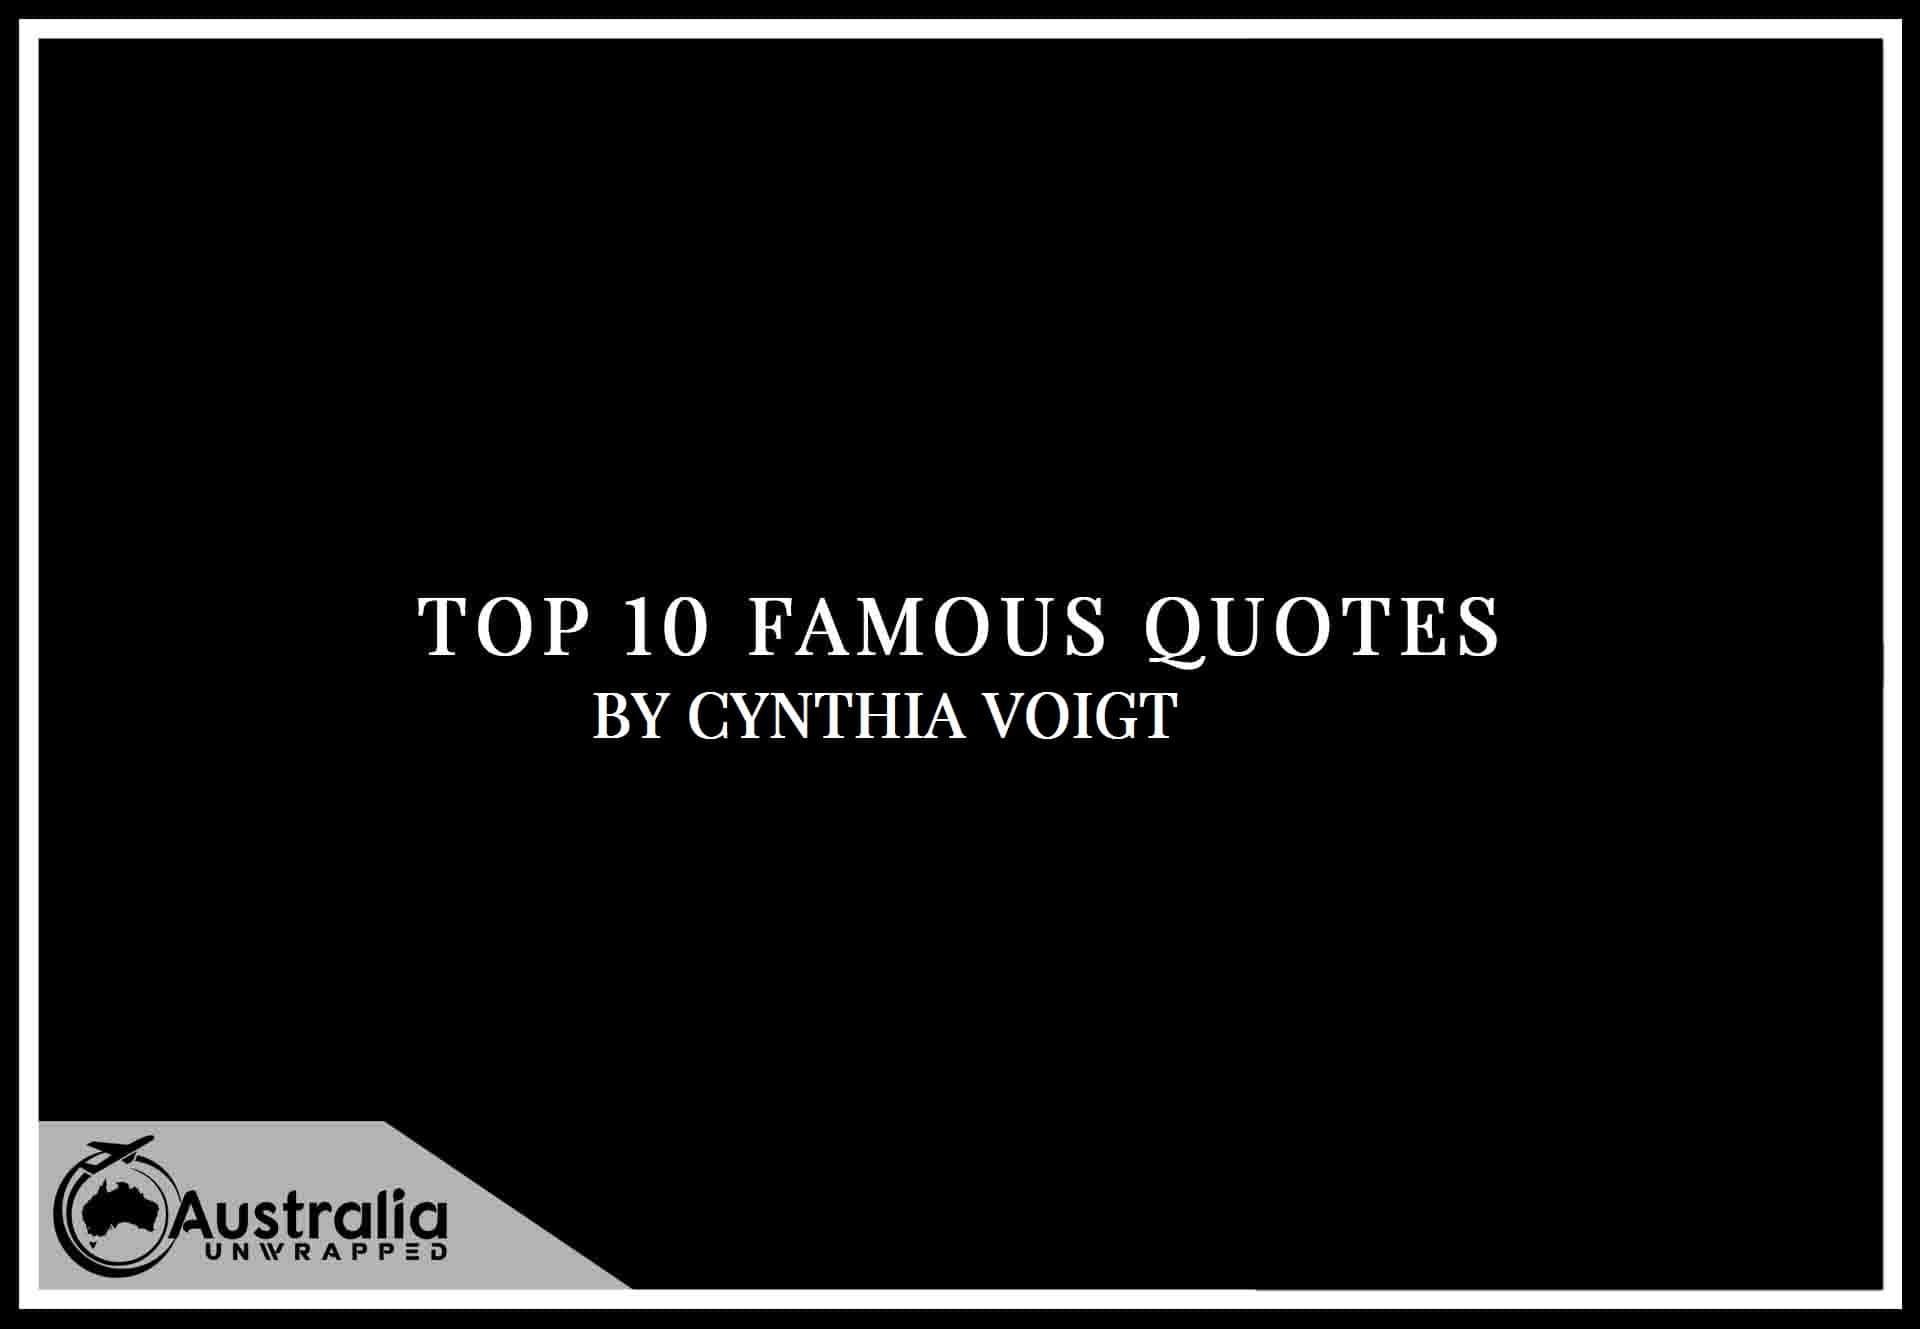 Cynthia Voigt's Top 10 Popular and Famous Quotes